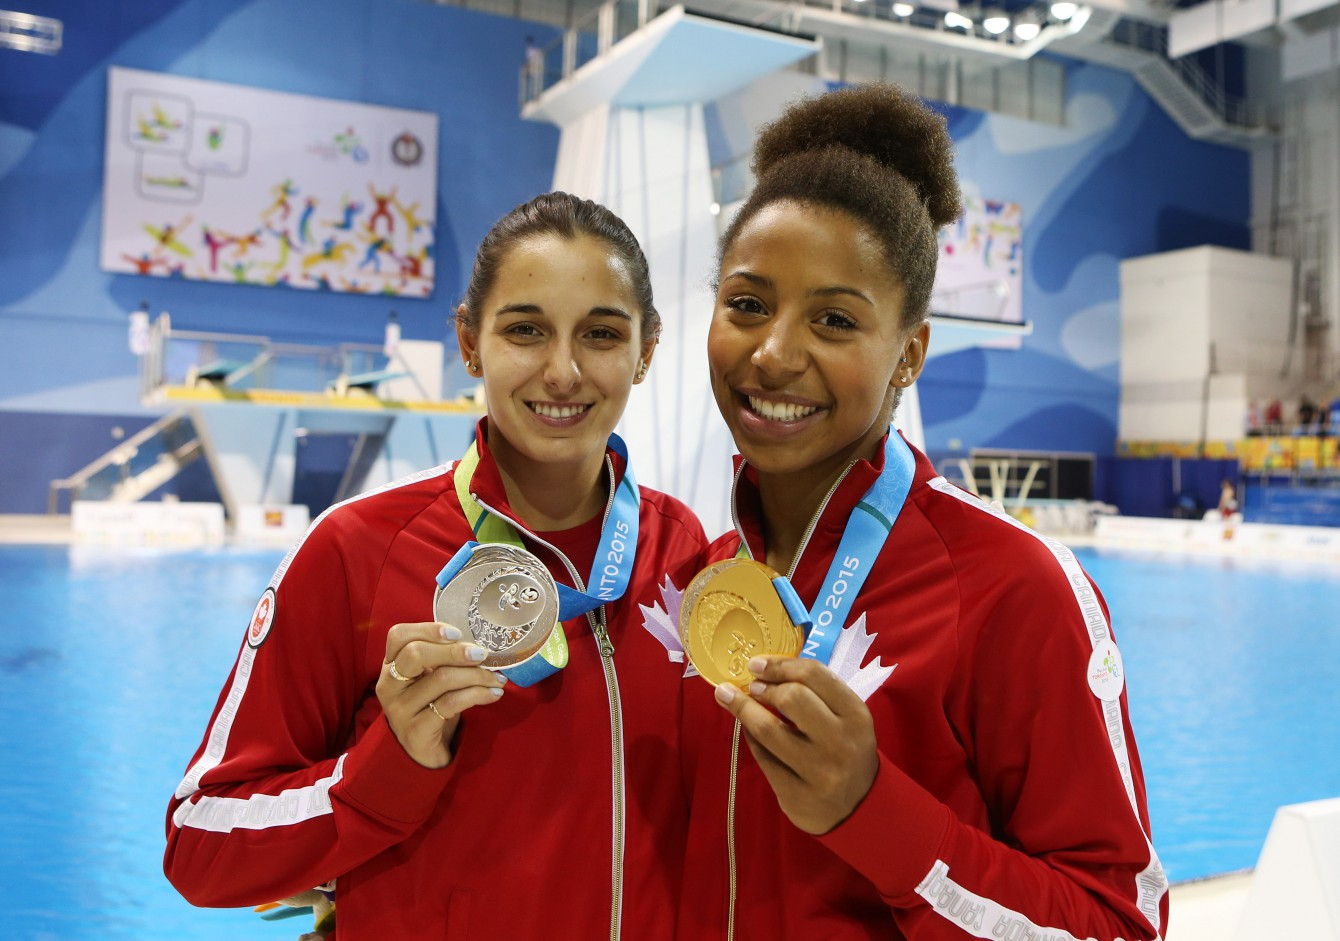 TORONTO, ON - JULY 12:  Pamela Ware of Canada wins Silver and Jennifer Abel of Canada wins Gold in the Women's 3m Springboard Final during the Toronto 2015 Pan Am Games at the CIBC Aquatic Centre on July 12, 2015 in Toronto, Ontario, Canada.  (Photo by Vaughn Ridley/Canada Diving)